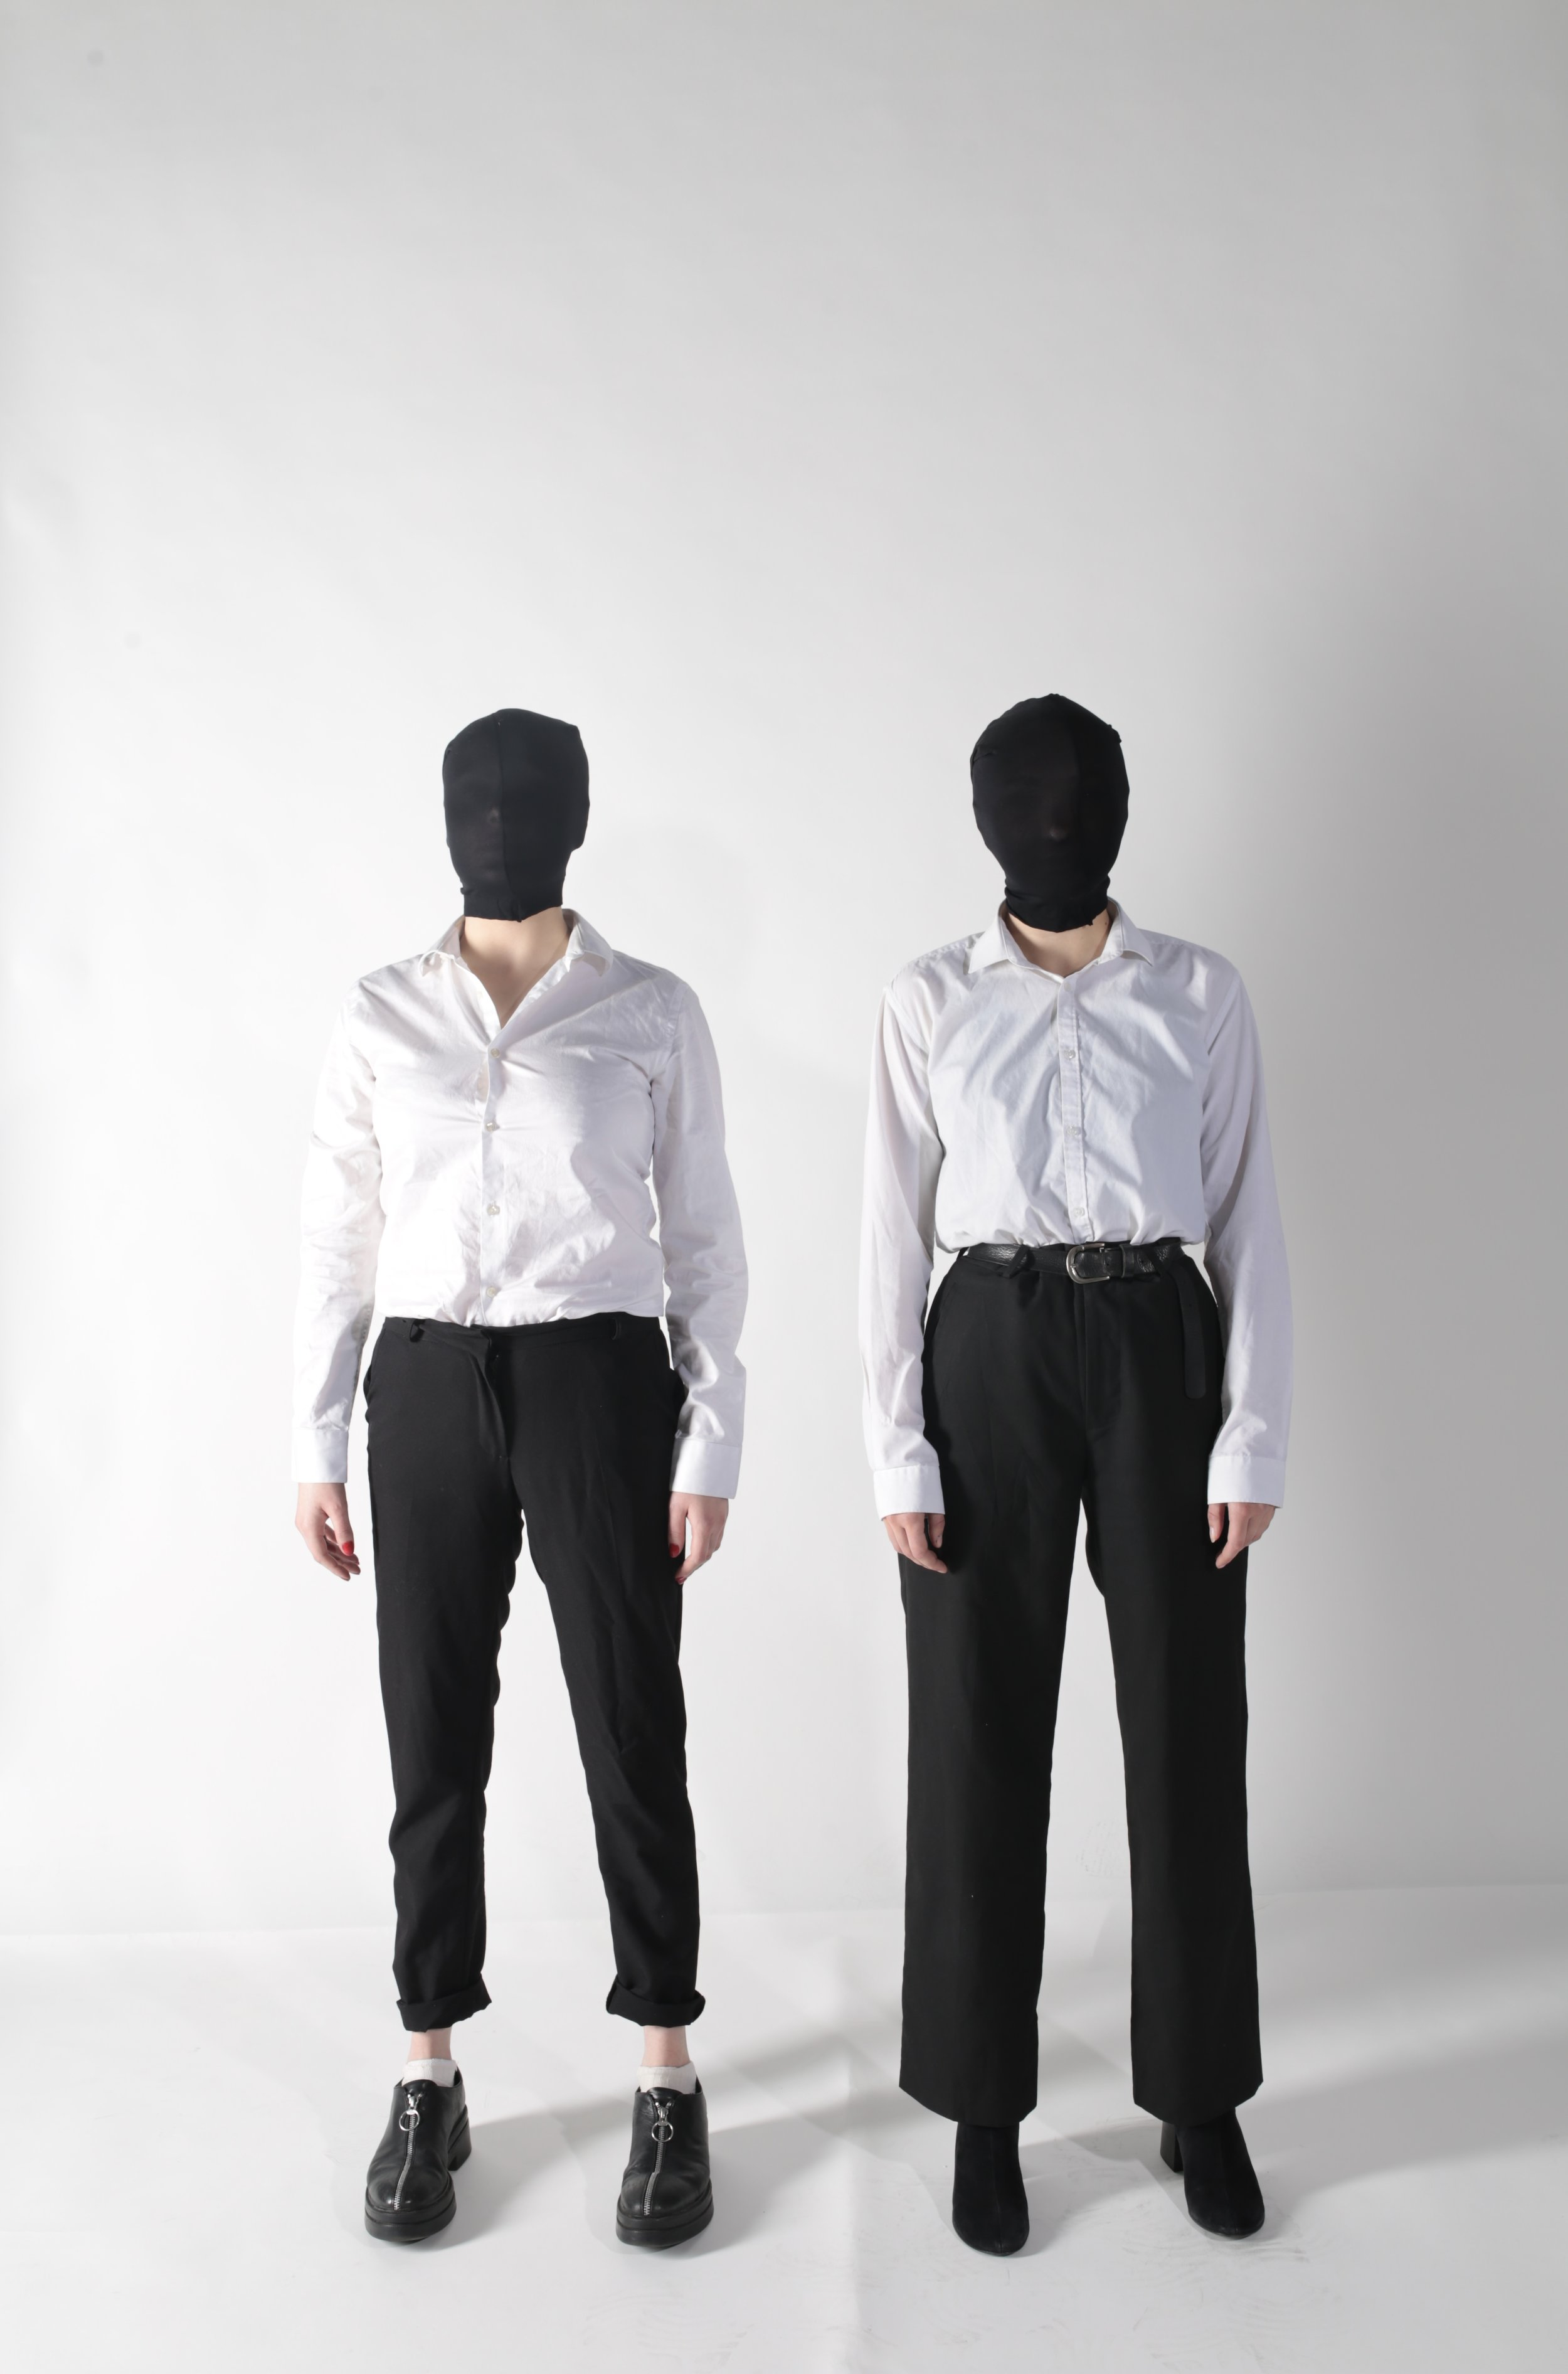 White Shirts - Zara Trousers - New Look Brogues - Vagabond Boots - Topshop